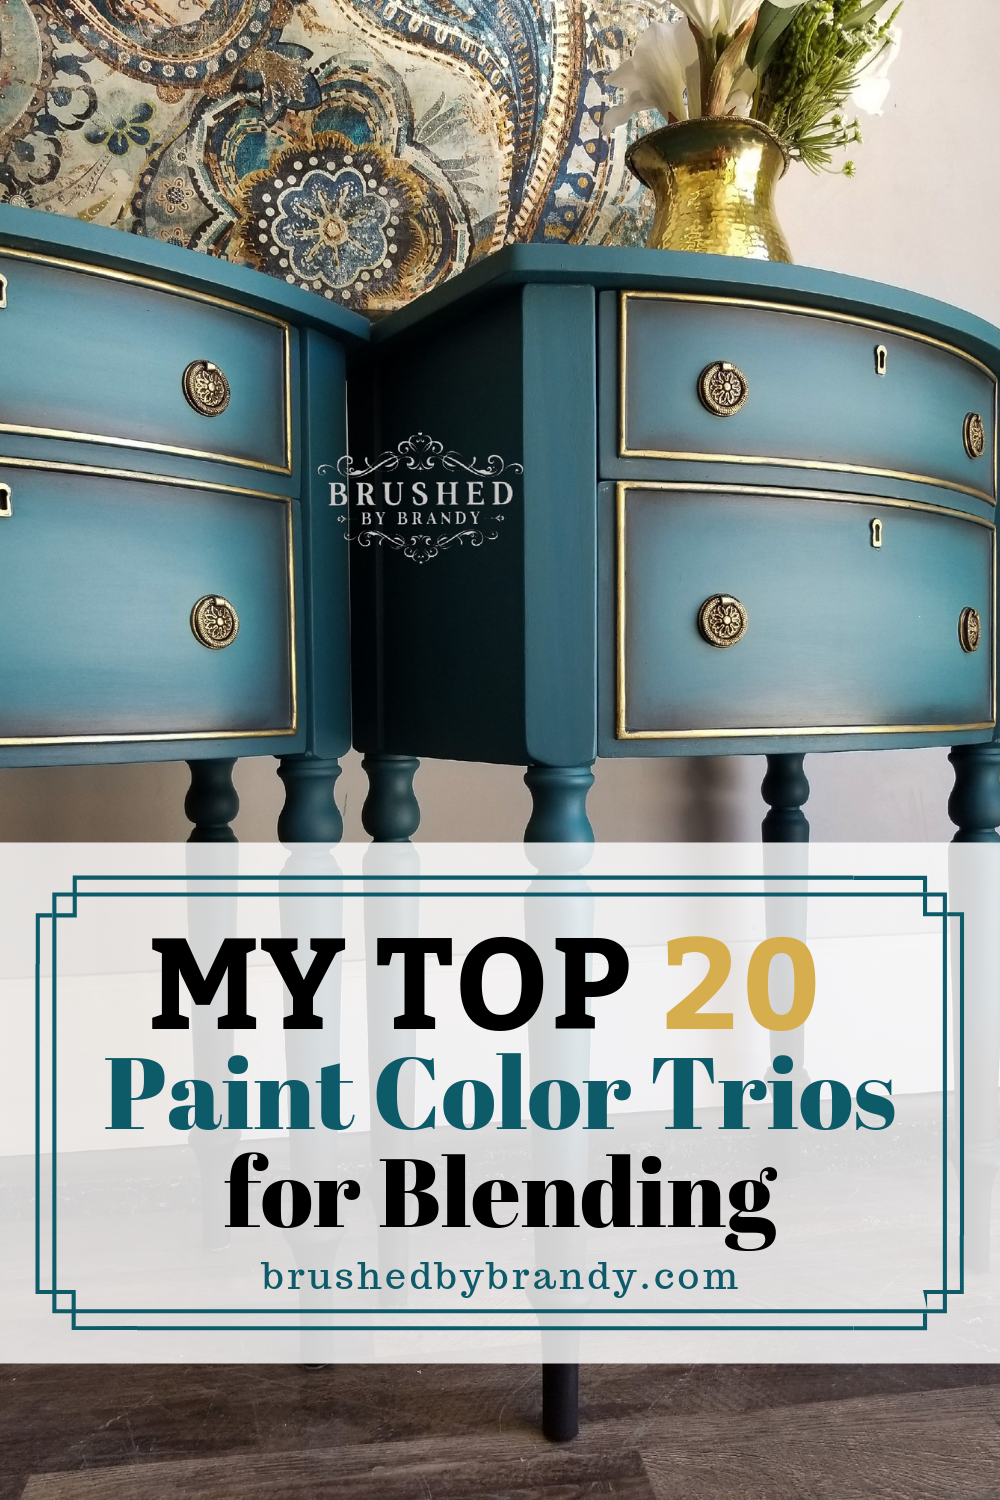 Awesome Paint Colour Choices For Blended Finishes Blendedpaintfinish Paintedfu In 2020 Painted Furniture Colors Painting Furniture Diy Furniture Painting Techniques